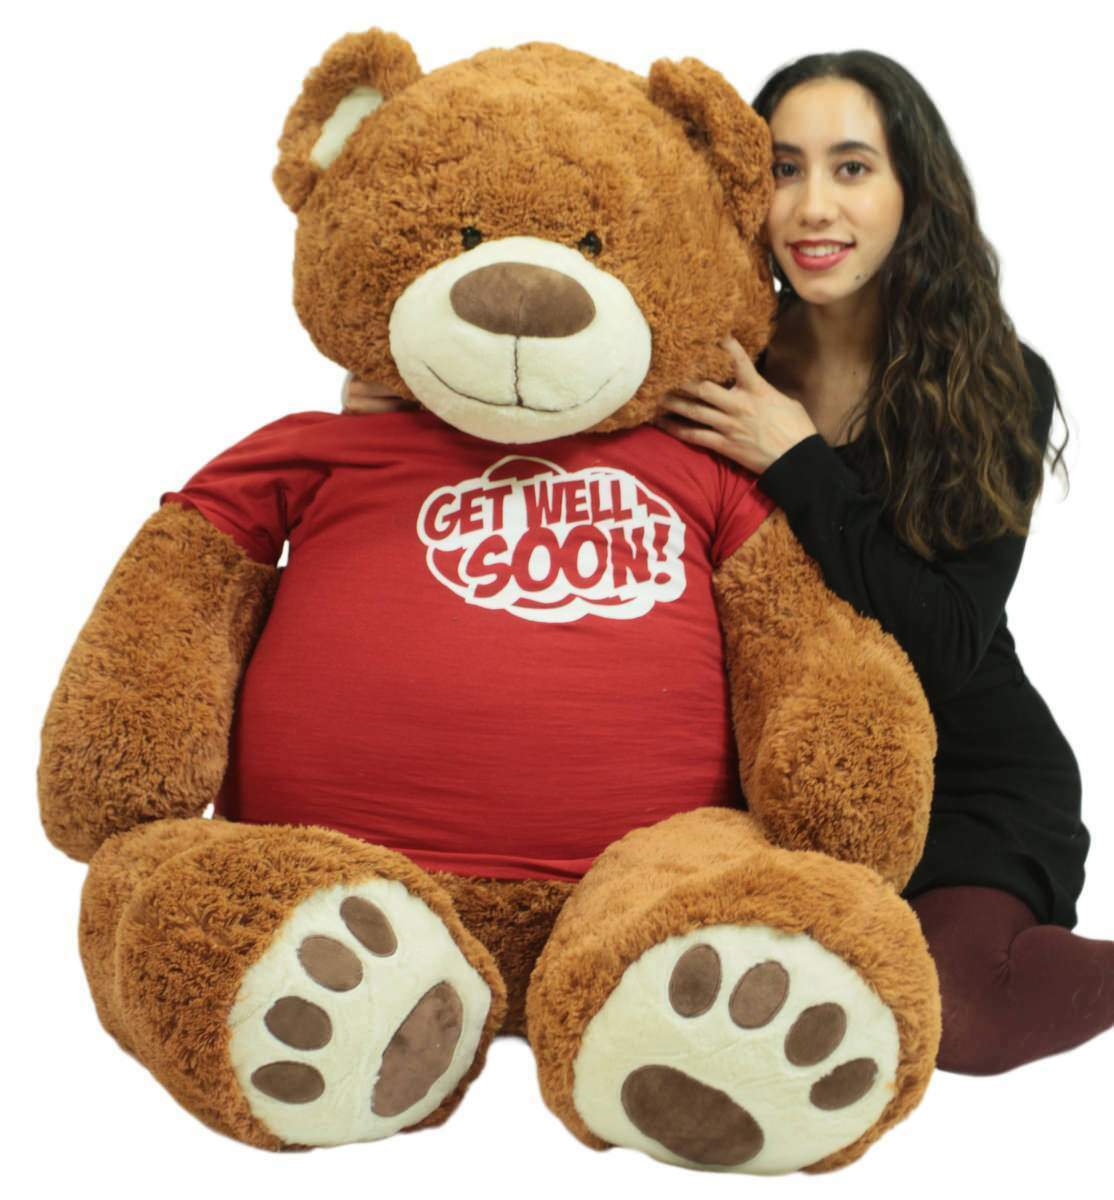 Primary image for Get Well Soon Giant Teddy Bear 5 ft Soft 60 Inch, Wears T-shirt Get Well Soon